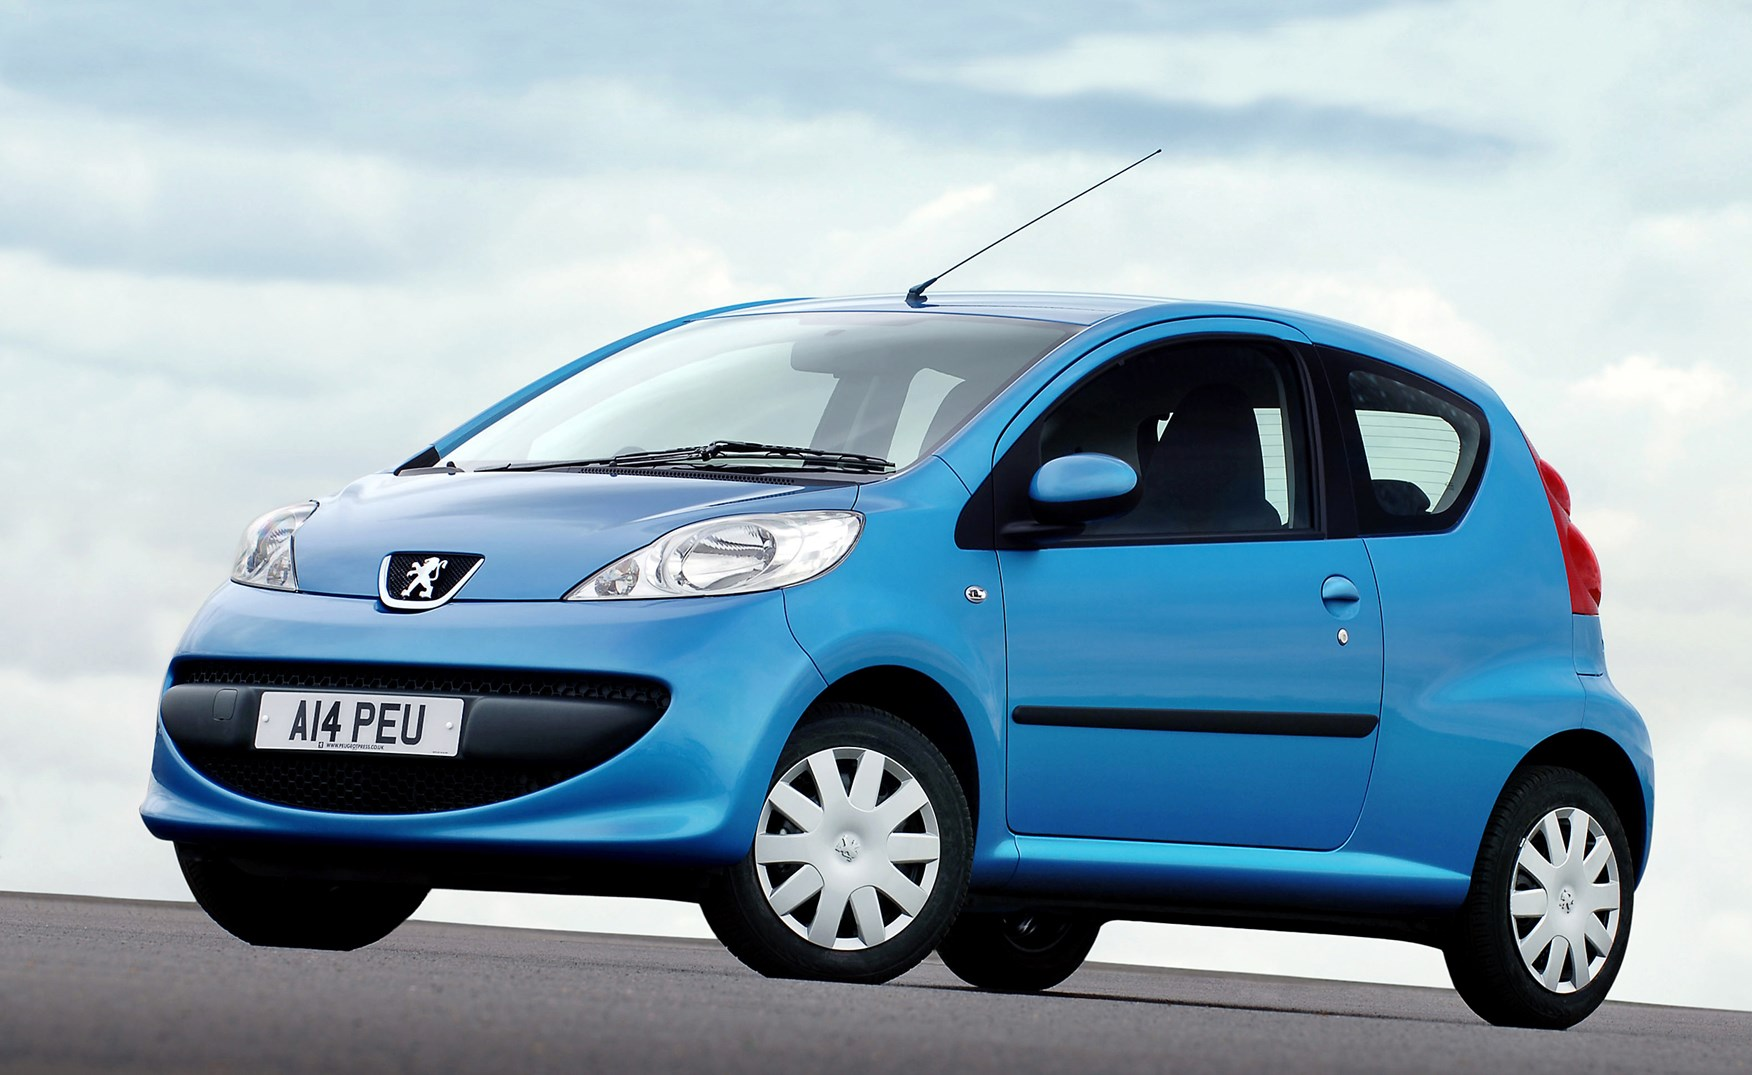 Peugeot 107 I Restyling 2009 - 2012 Hatchback 3 door #2